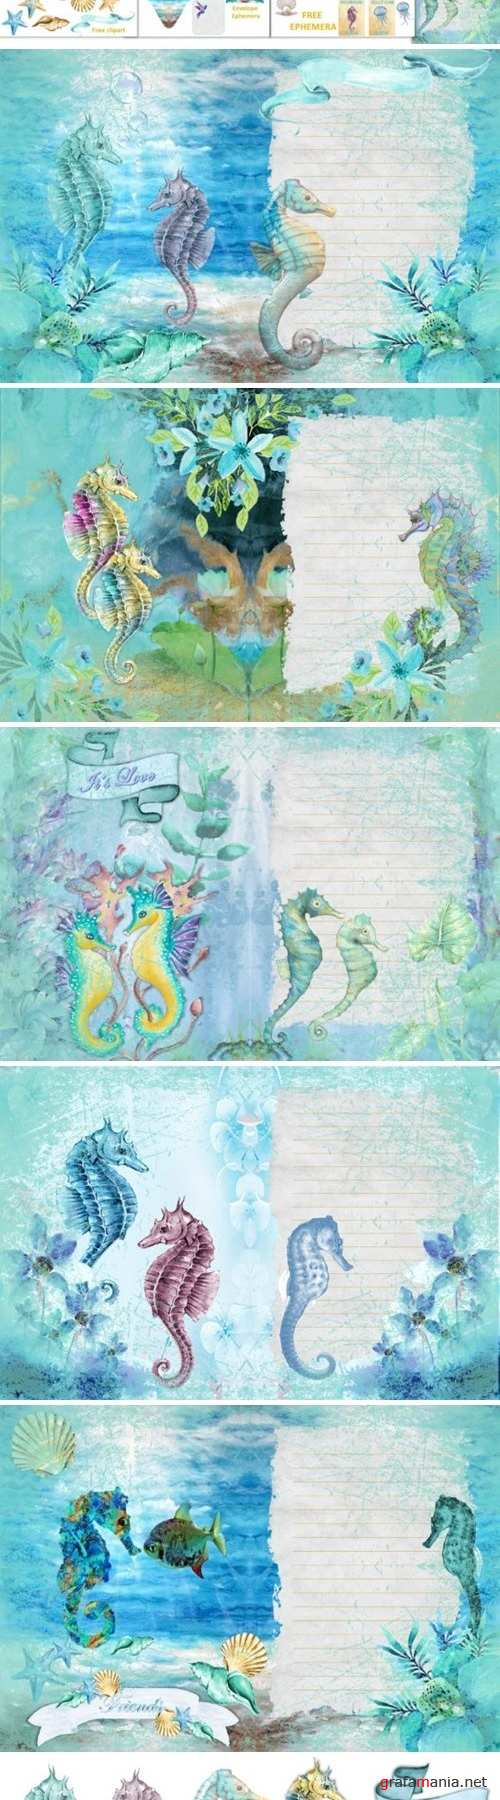 Seahorses Journaling pages FREE Clipart and Ephemera - 298582